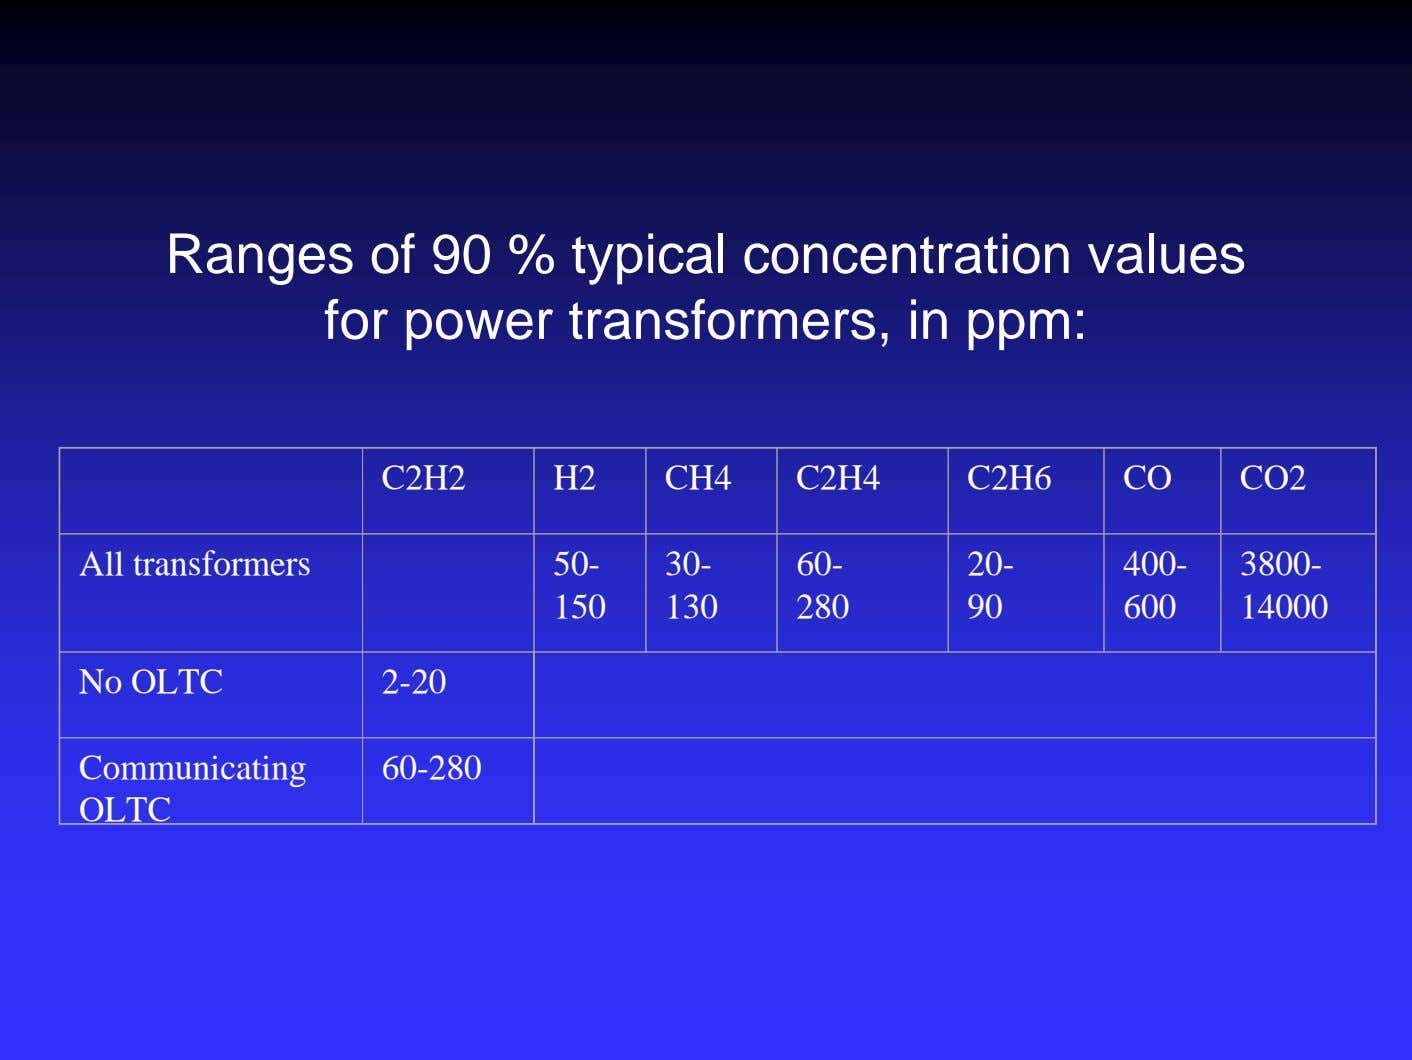 Ranges of 90 % typical concentration values for power transformers, in ppm: C2H2 H2 CH4